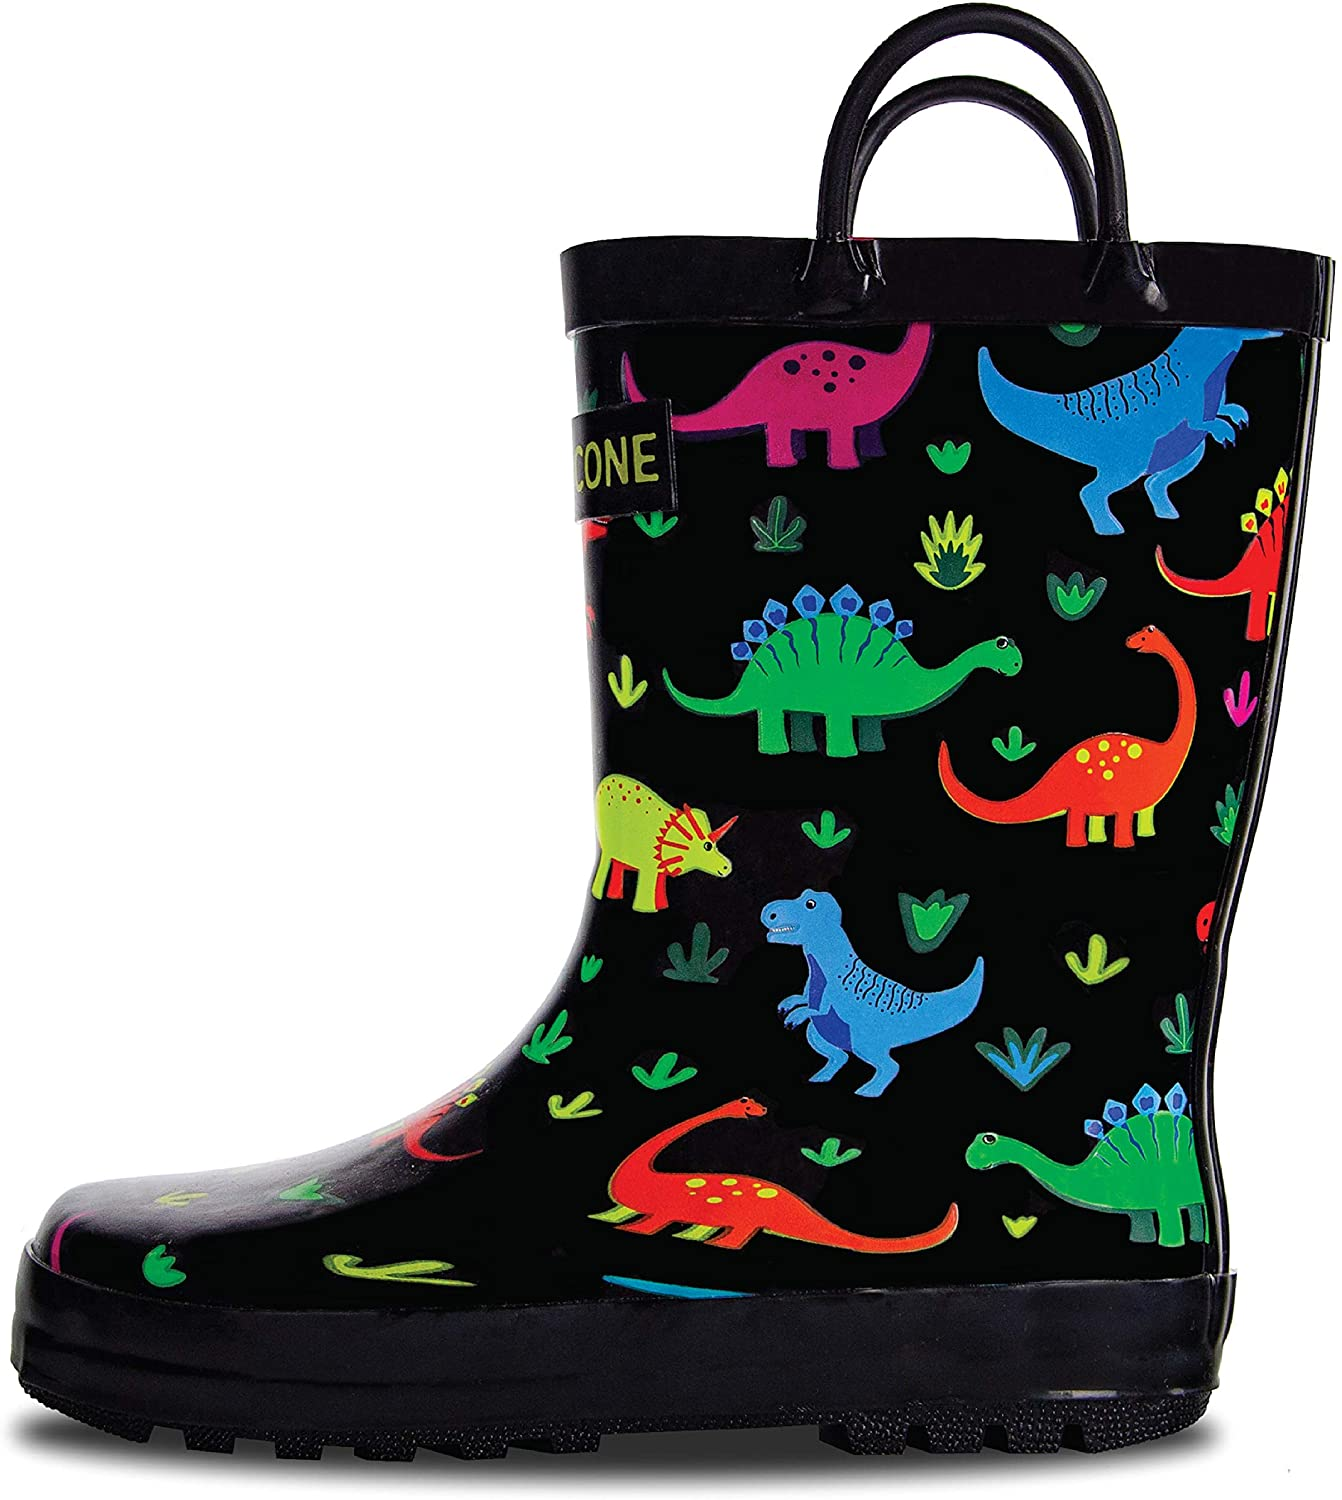 LONECONE Rain Ultra-Cheap Deals Boots It is very popular with Easy-On Patterns Fun in Handles Solid